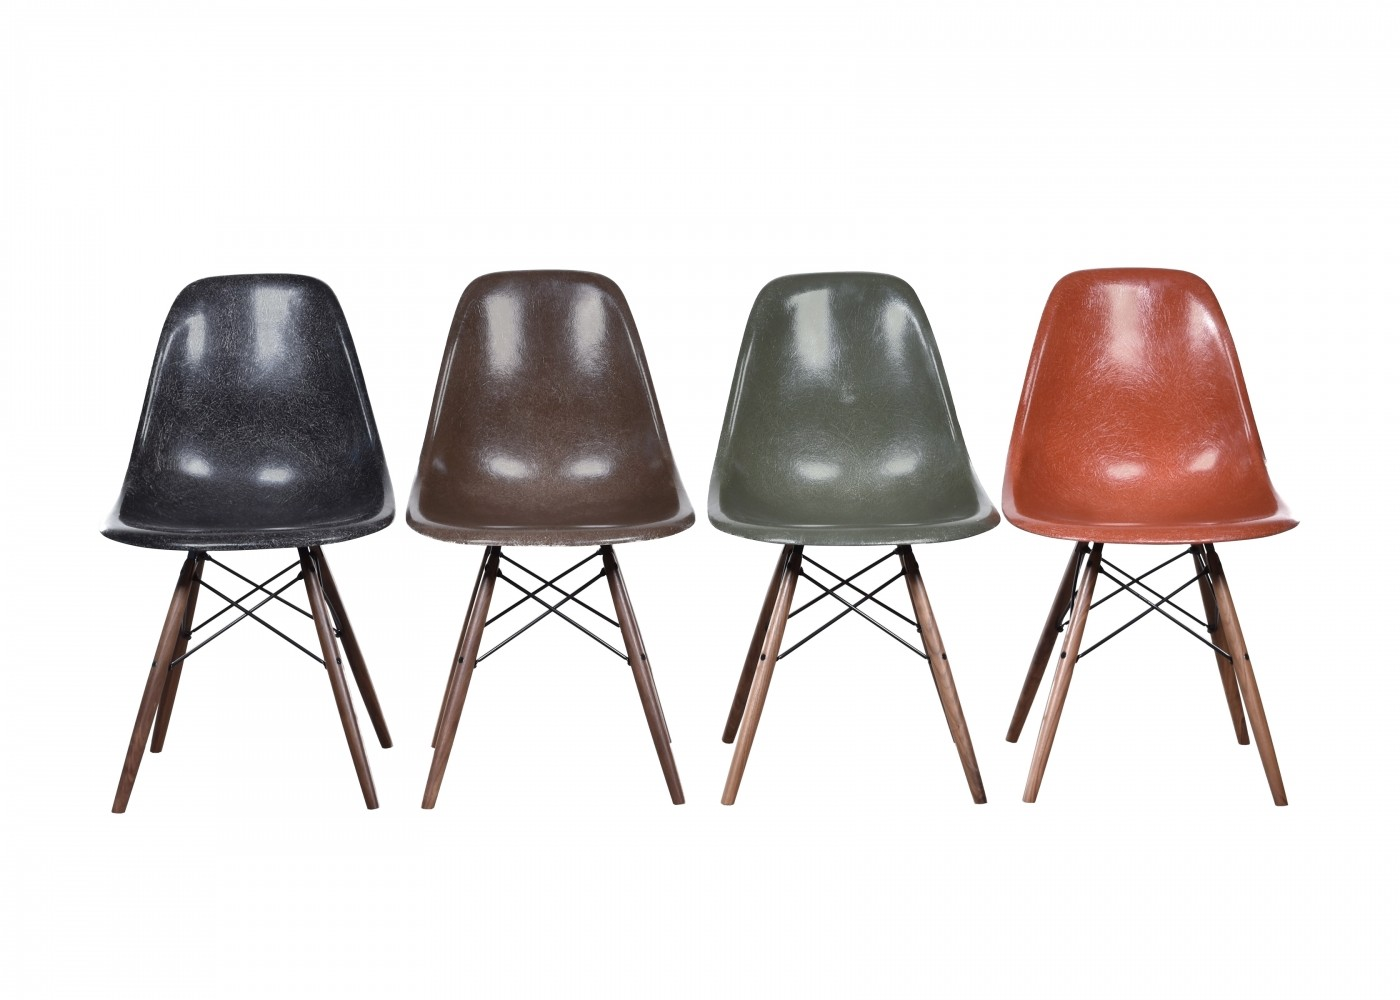 Set of 4 DSW dining chairs by Charles & Ray Eames for Herman Miller, 1970s